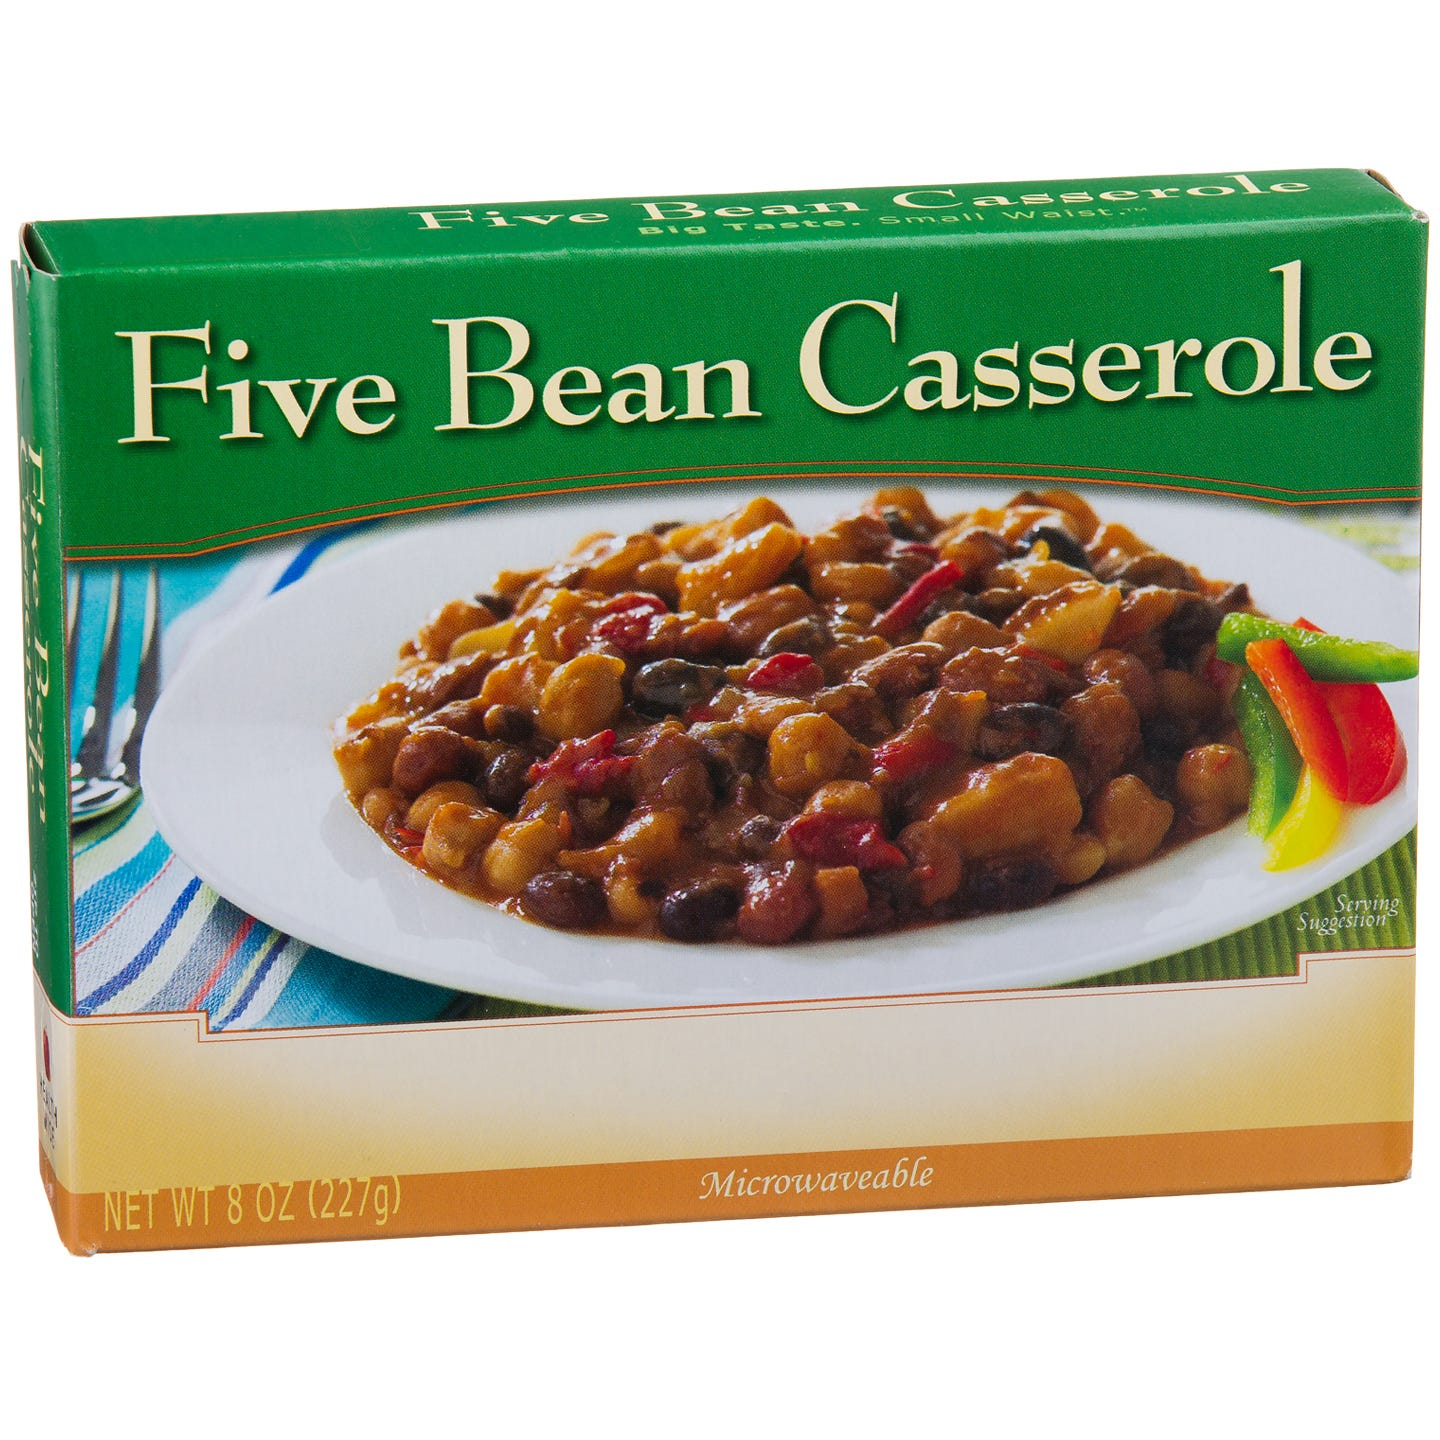 Low Calorie Meal Five Bean Casserole 8 Oz Bariwise image